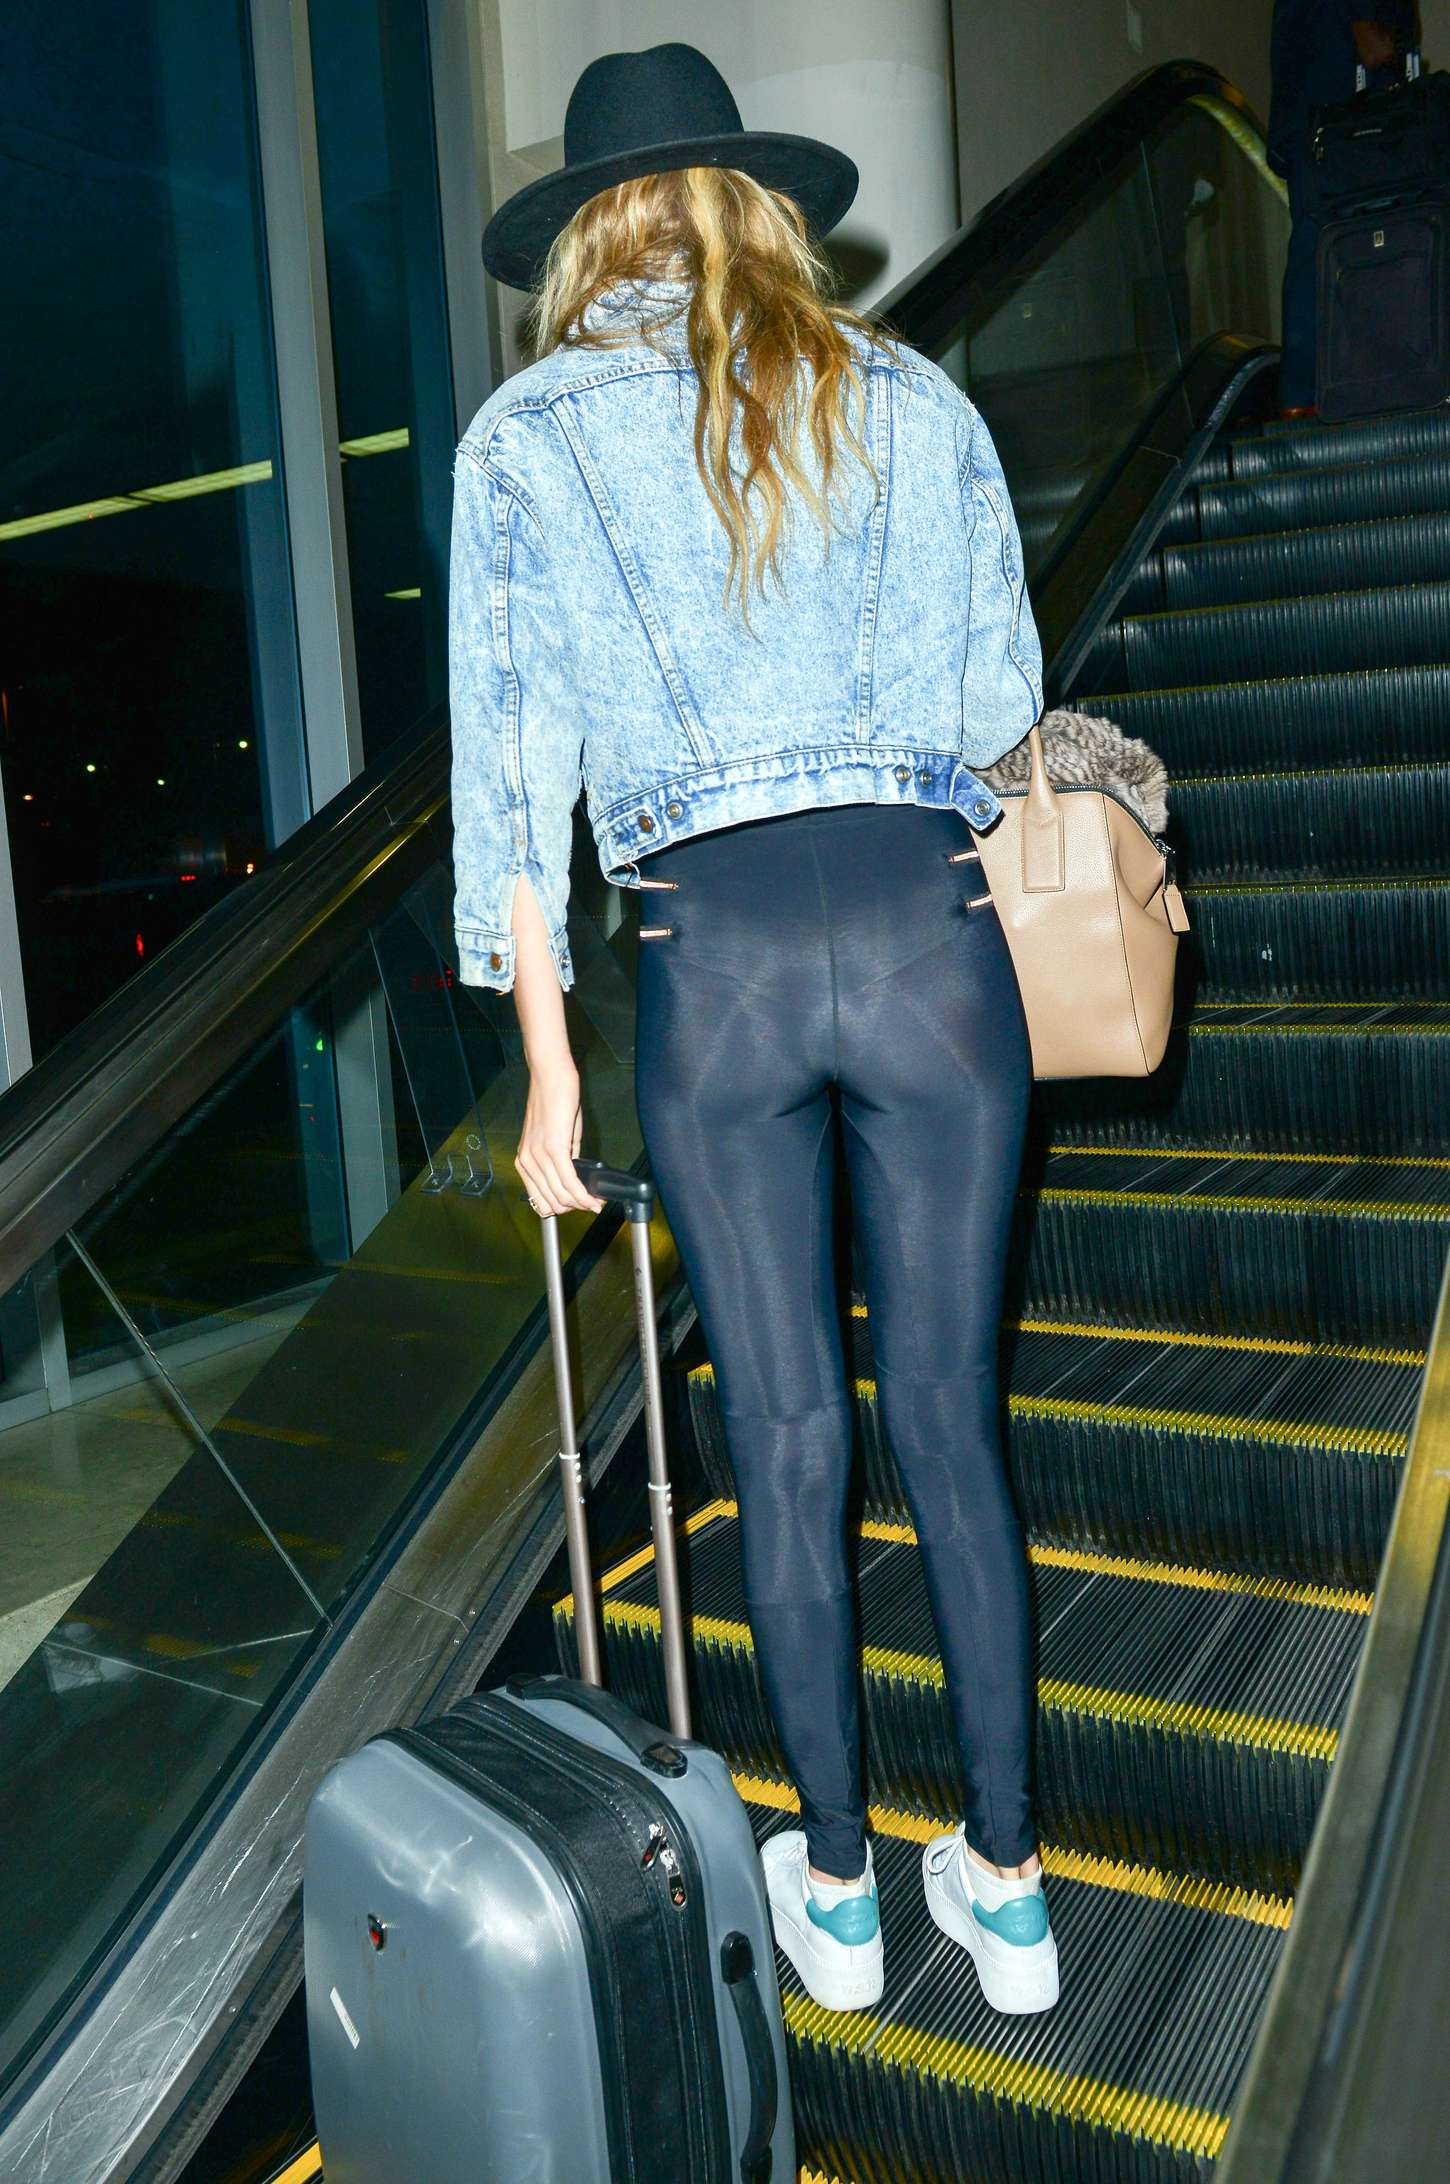 Gigi Hadid Booty In Tights 18 Gotceleb